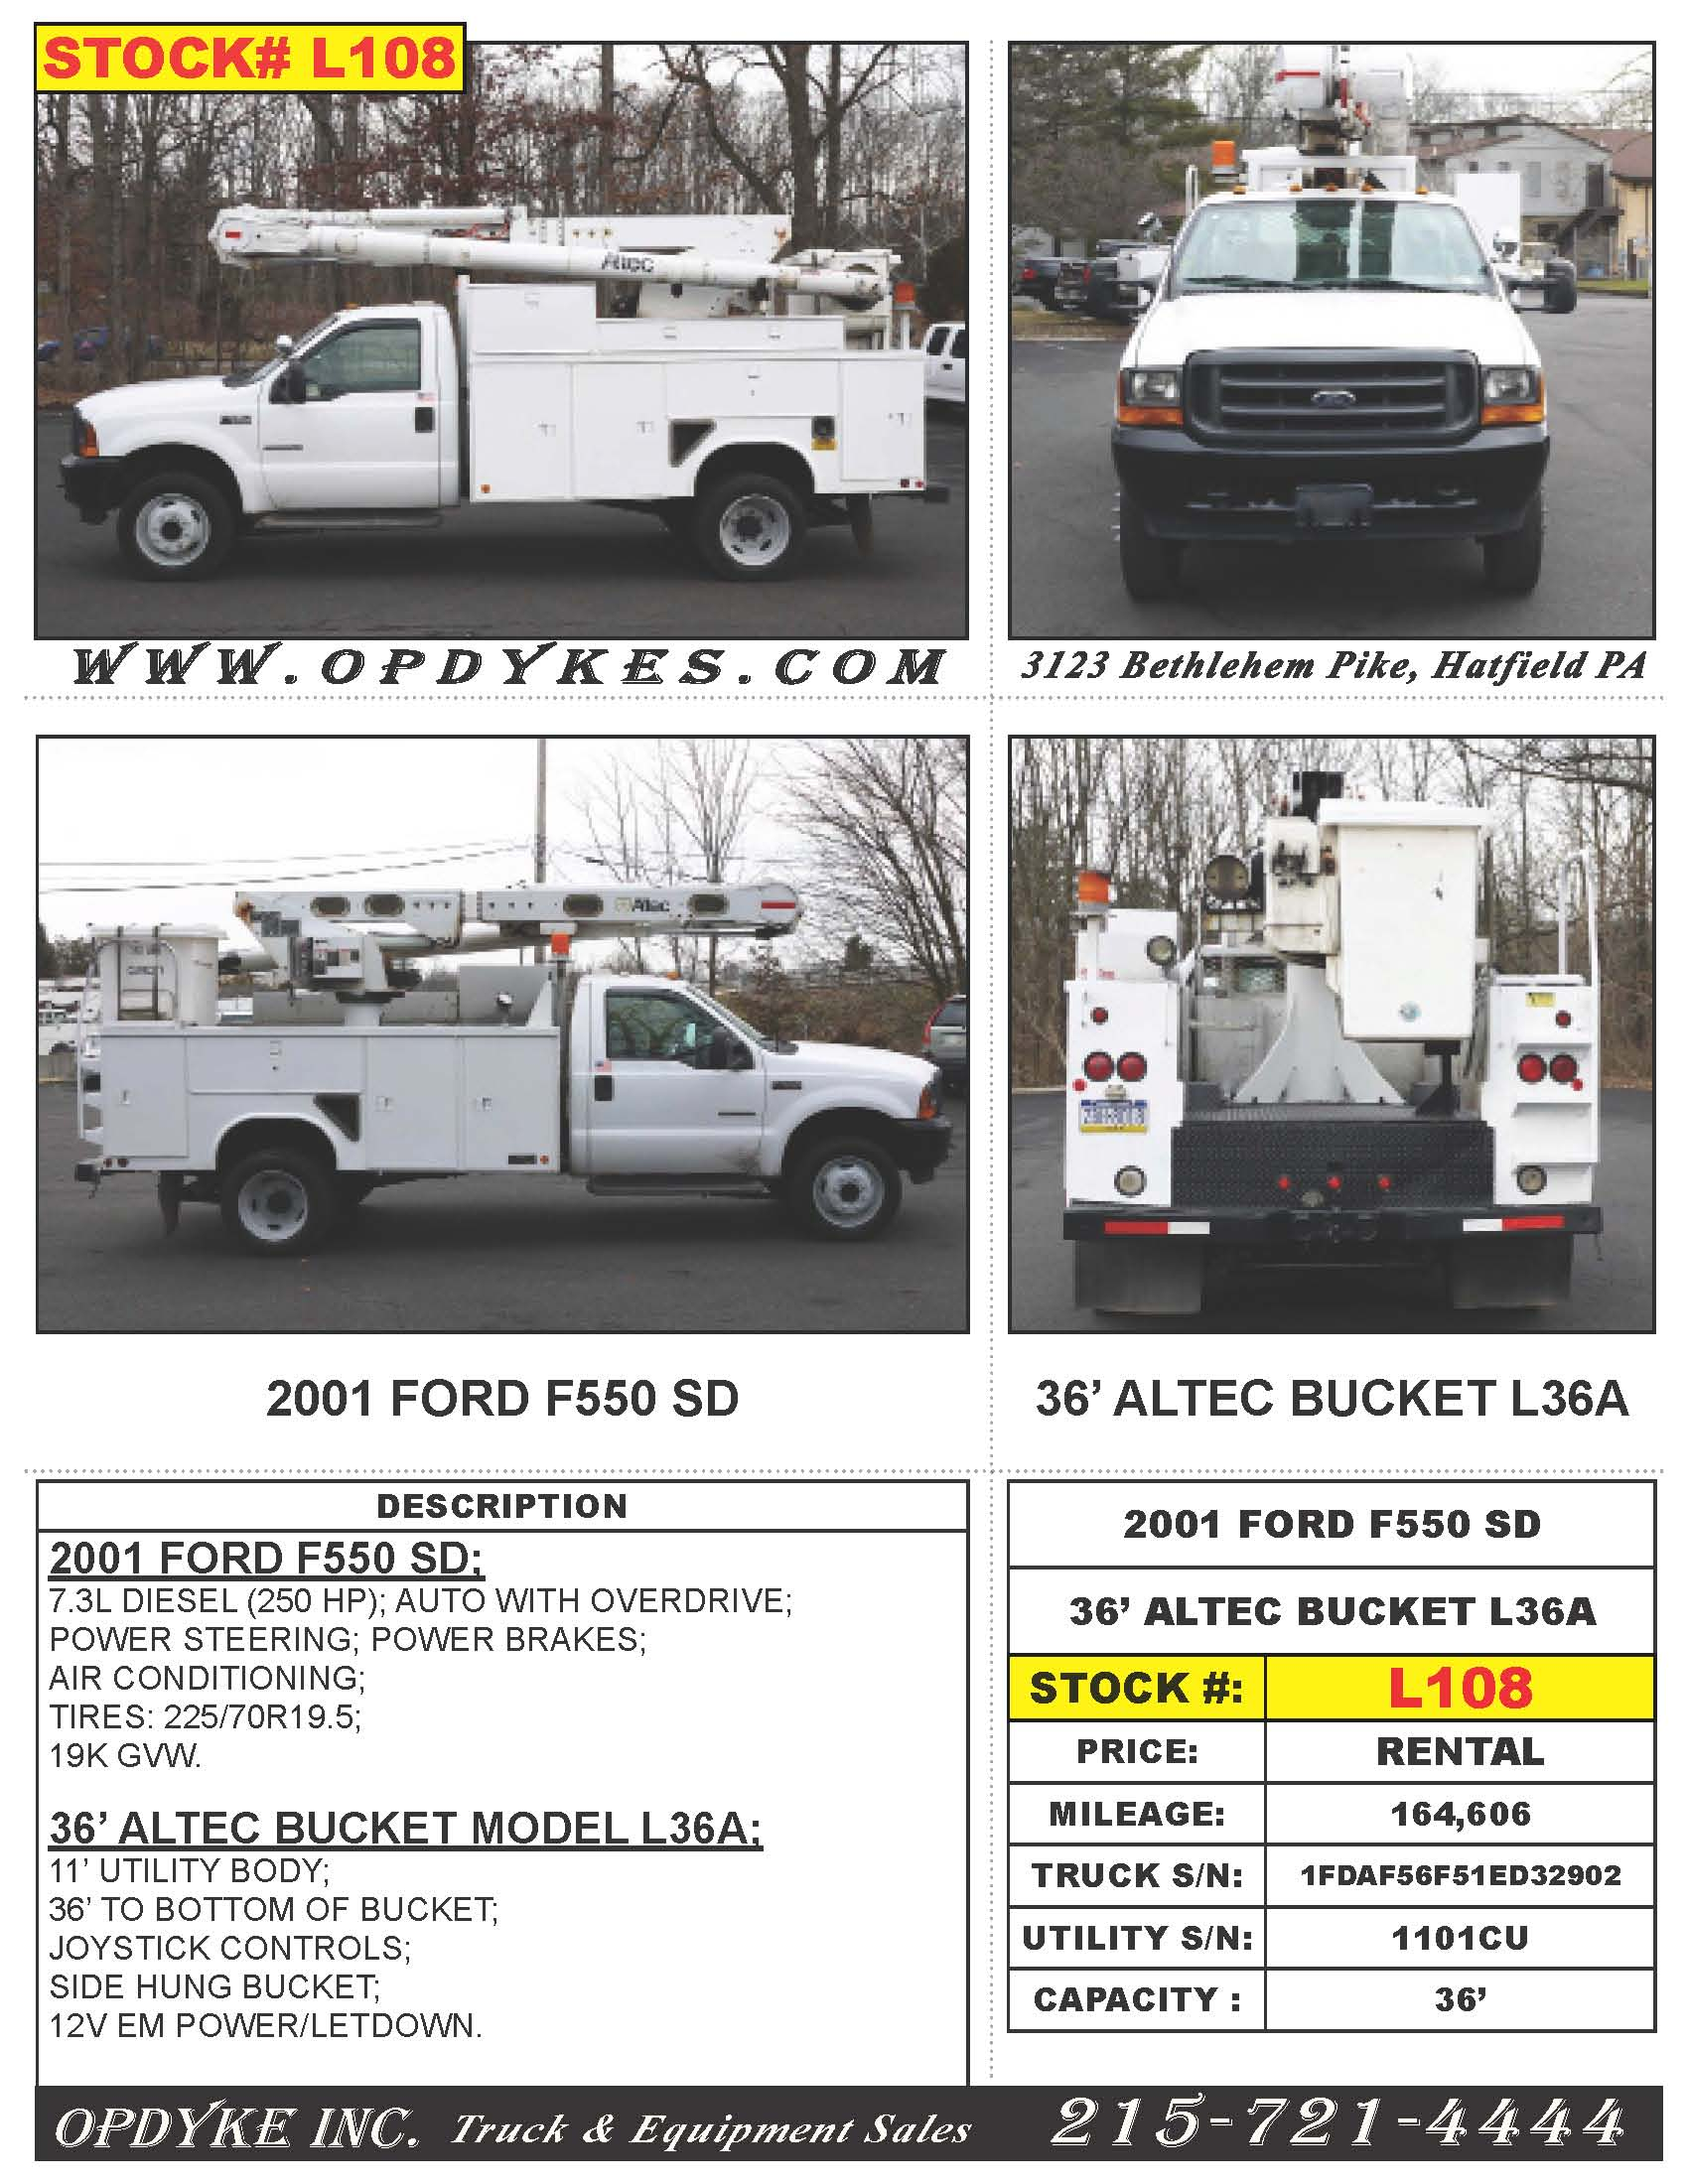 Opdyke, Inc  Specialized Trucks & Equipment - Rentals